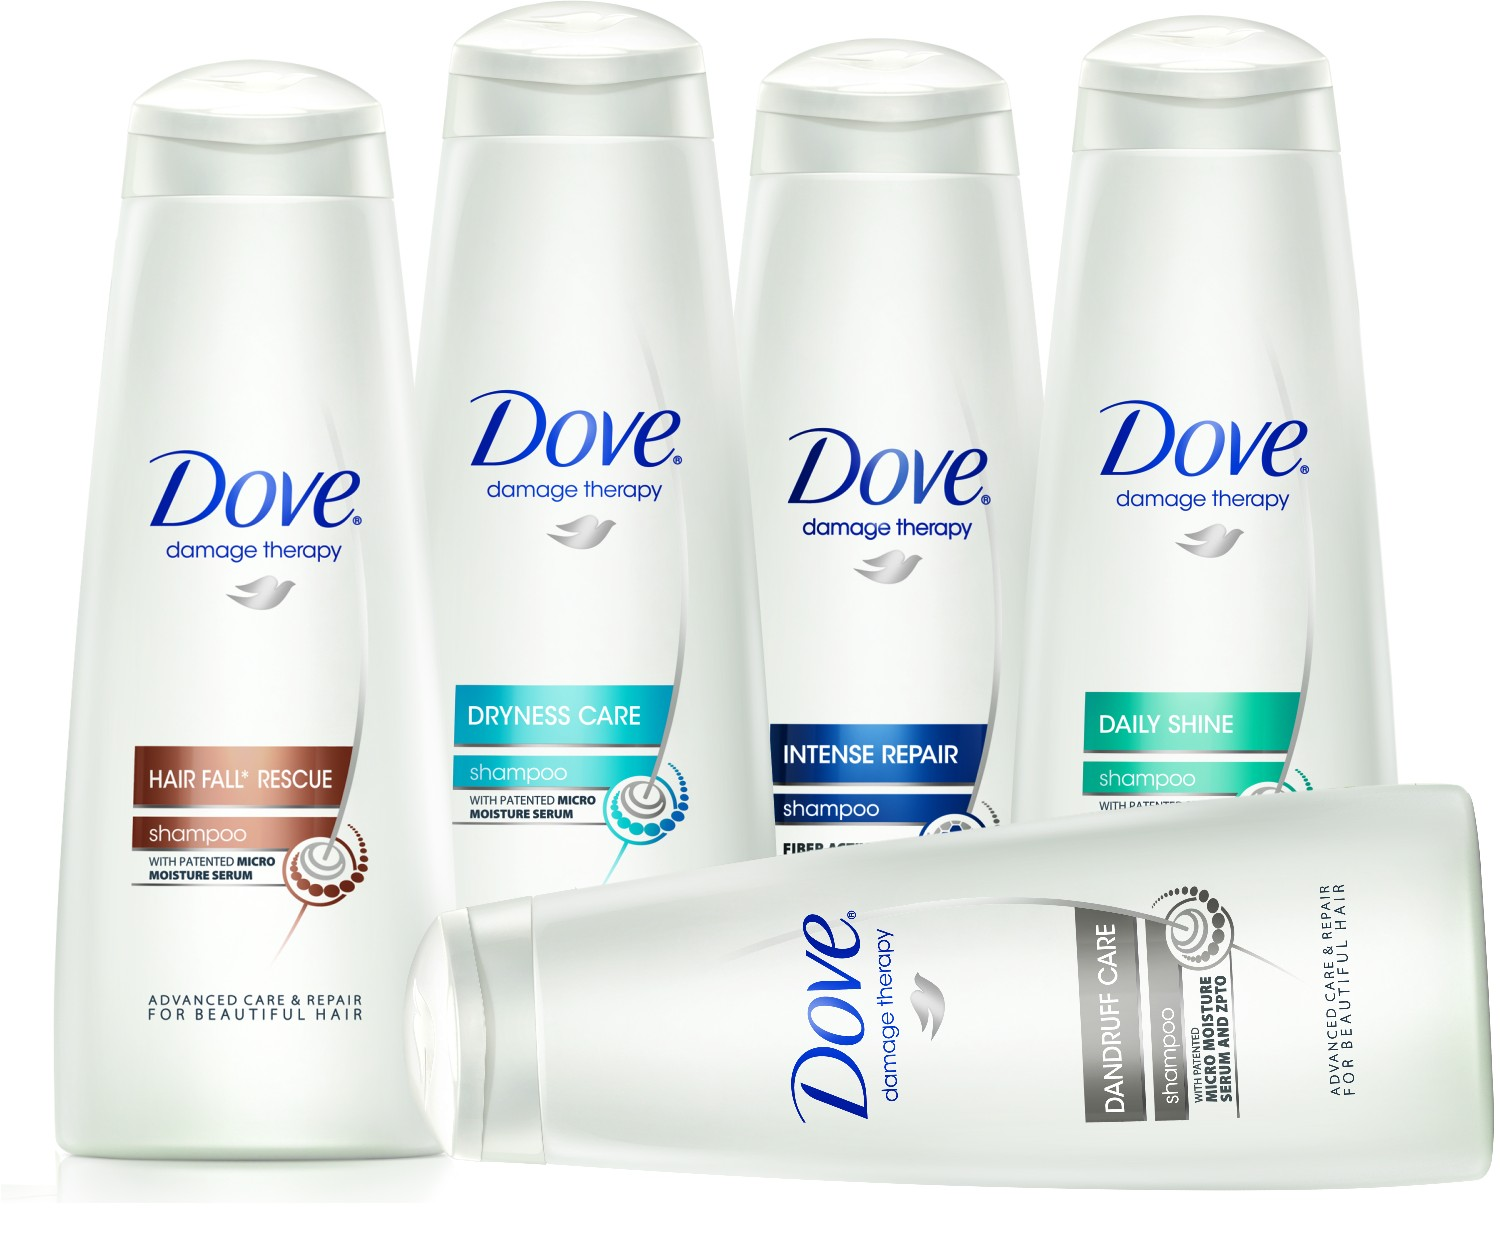 Dove Hair Care Coupon - $3.75/2 Dove Hair Care Products Coupon -